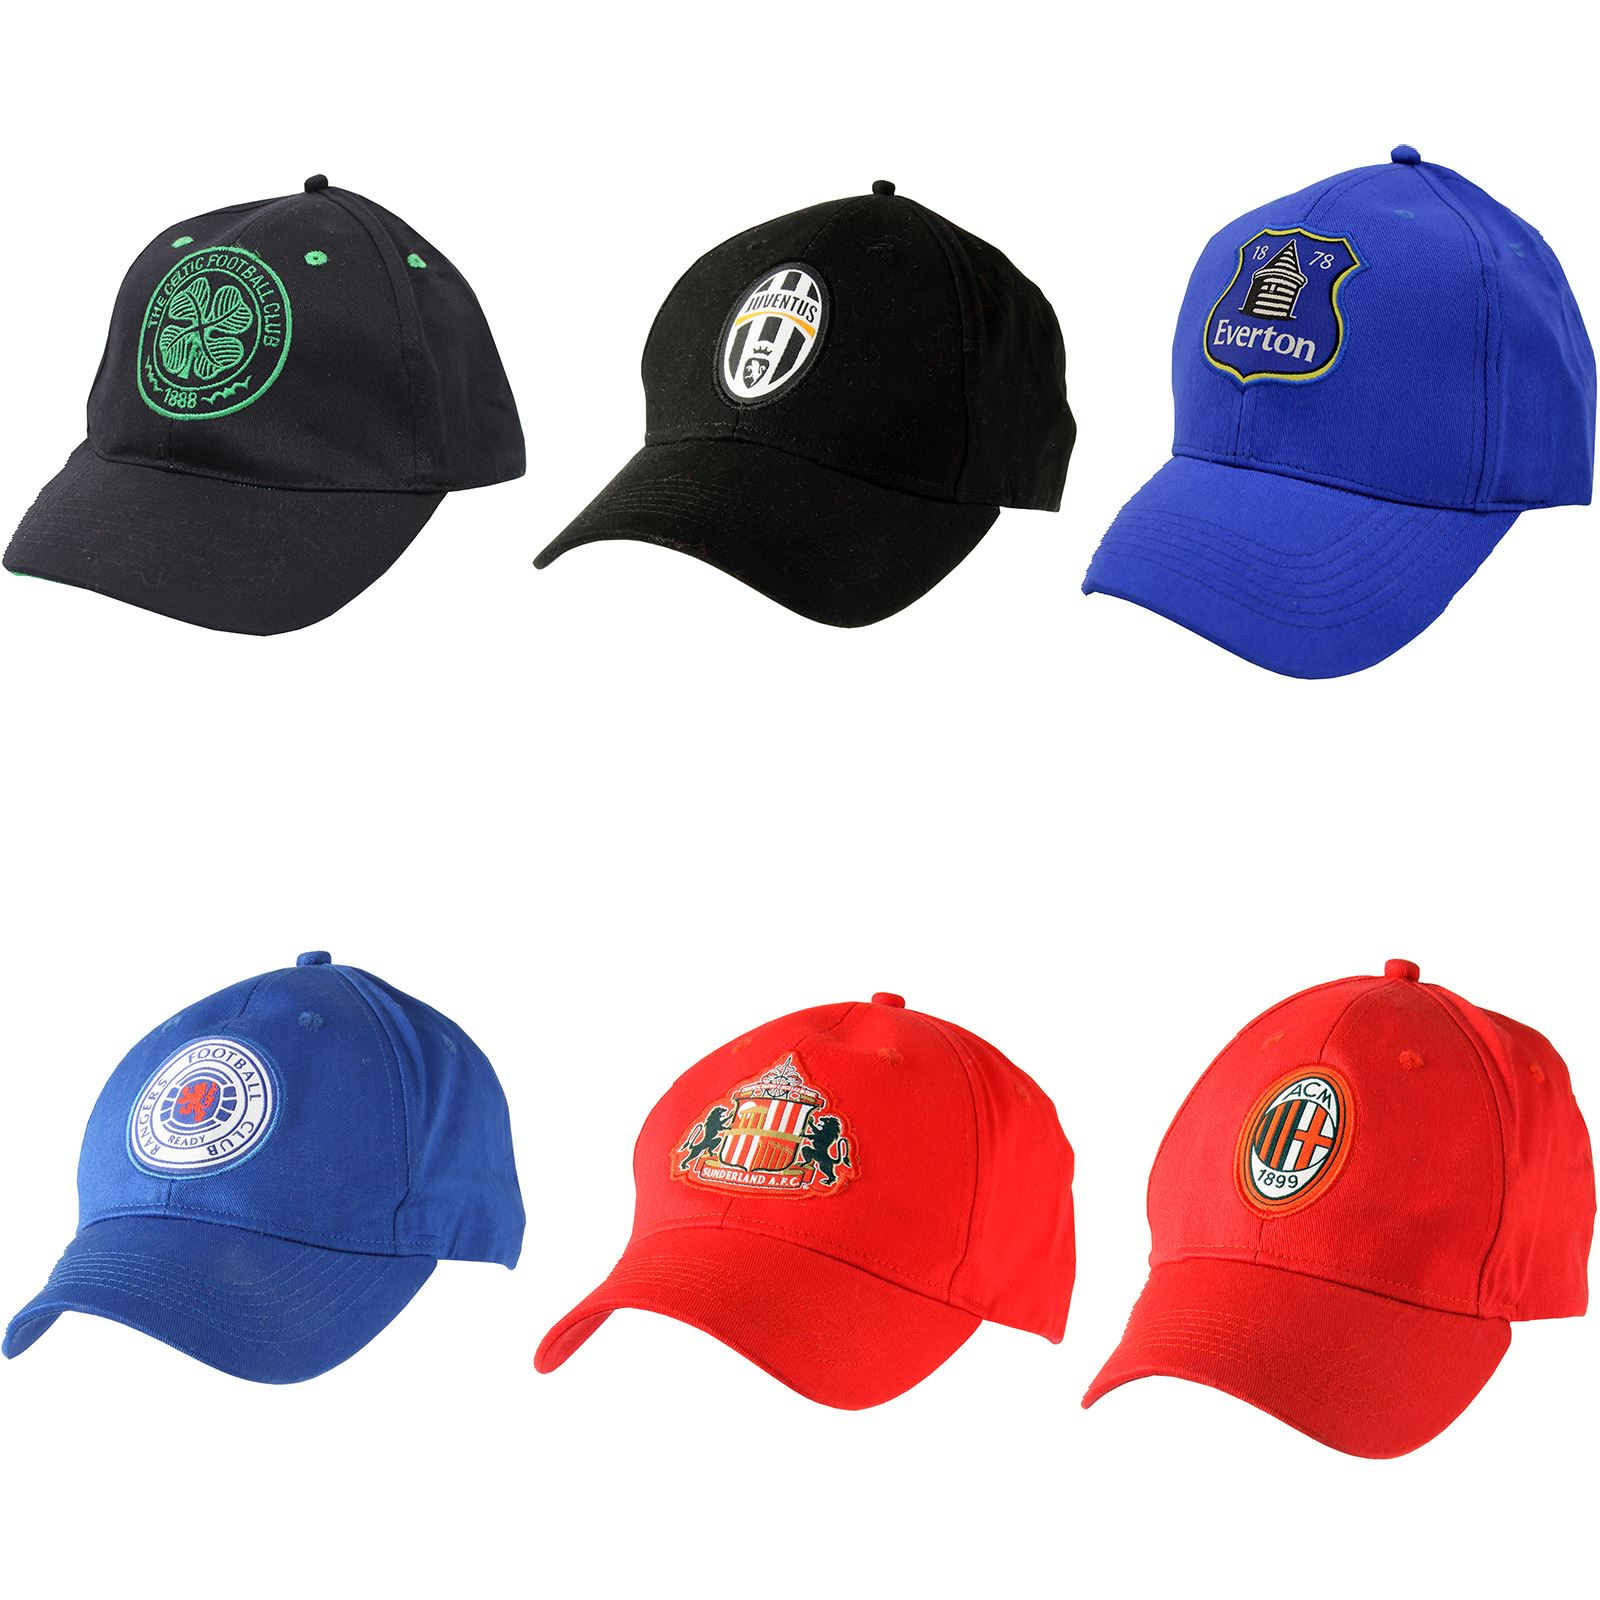 Details about Football FC Caps Baseball Hats Sport Adjustable Kids Adults  Official Gifts a0dbd8010